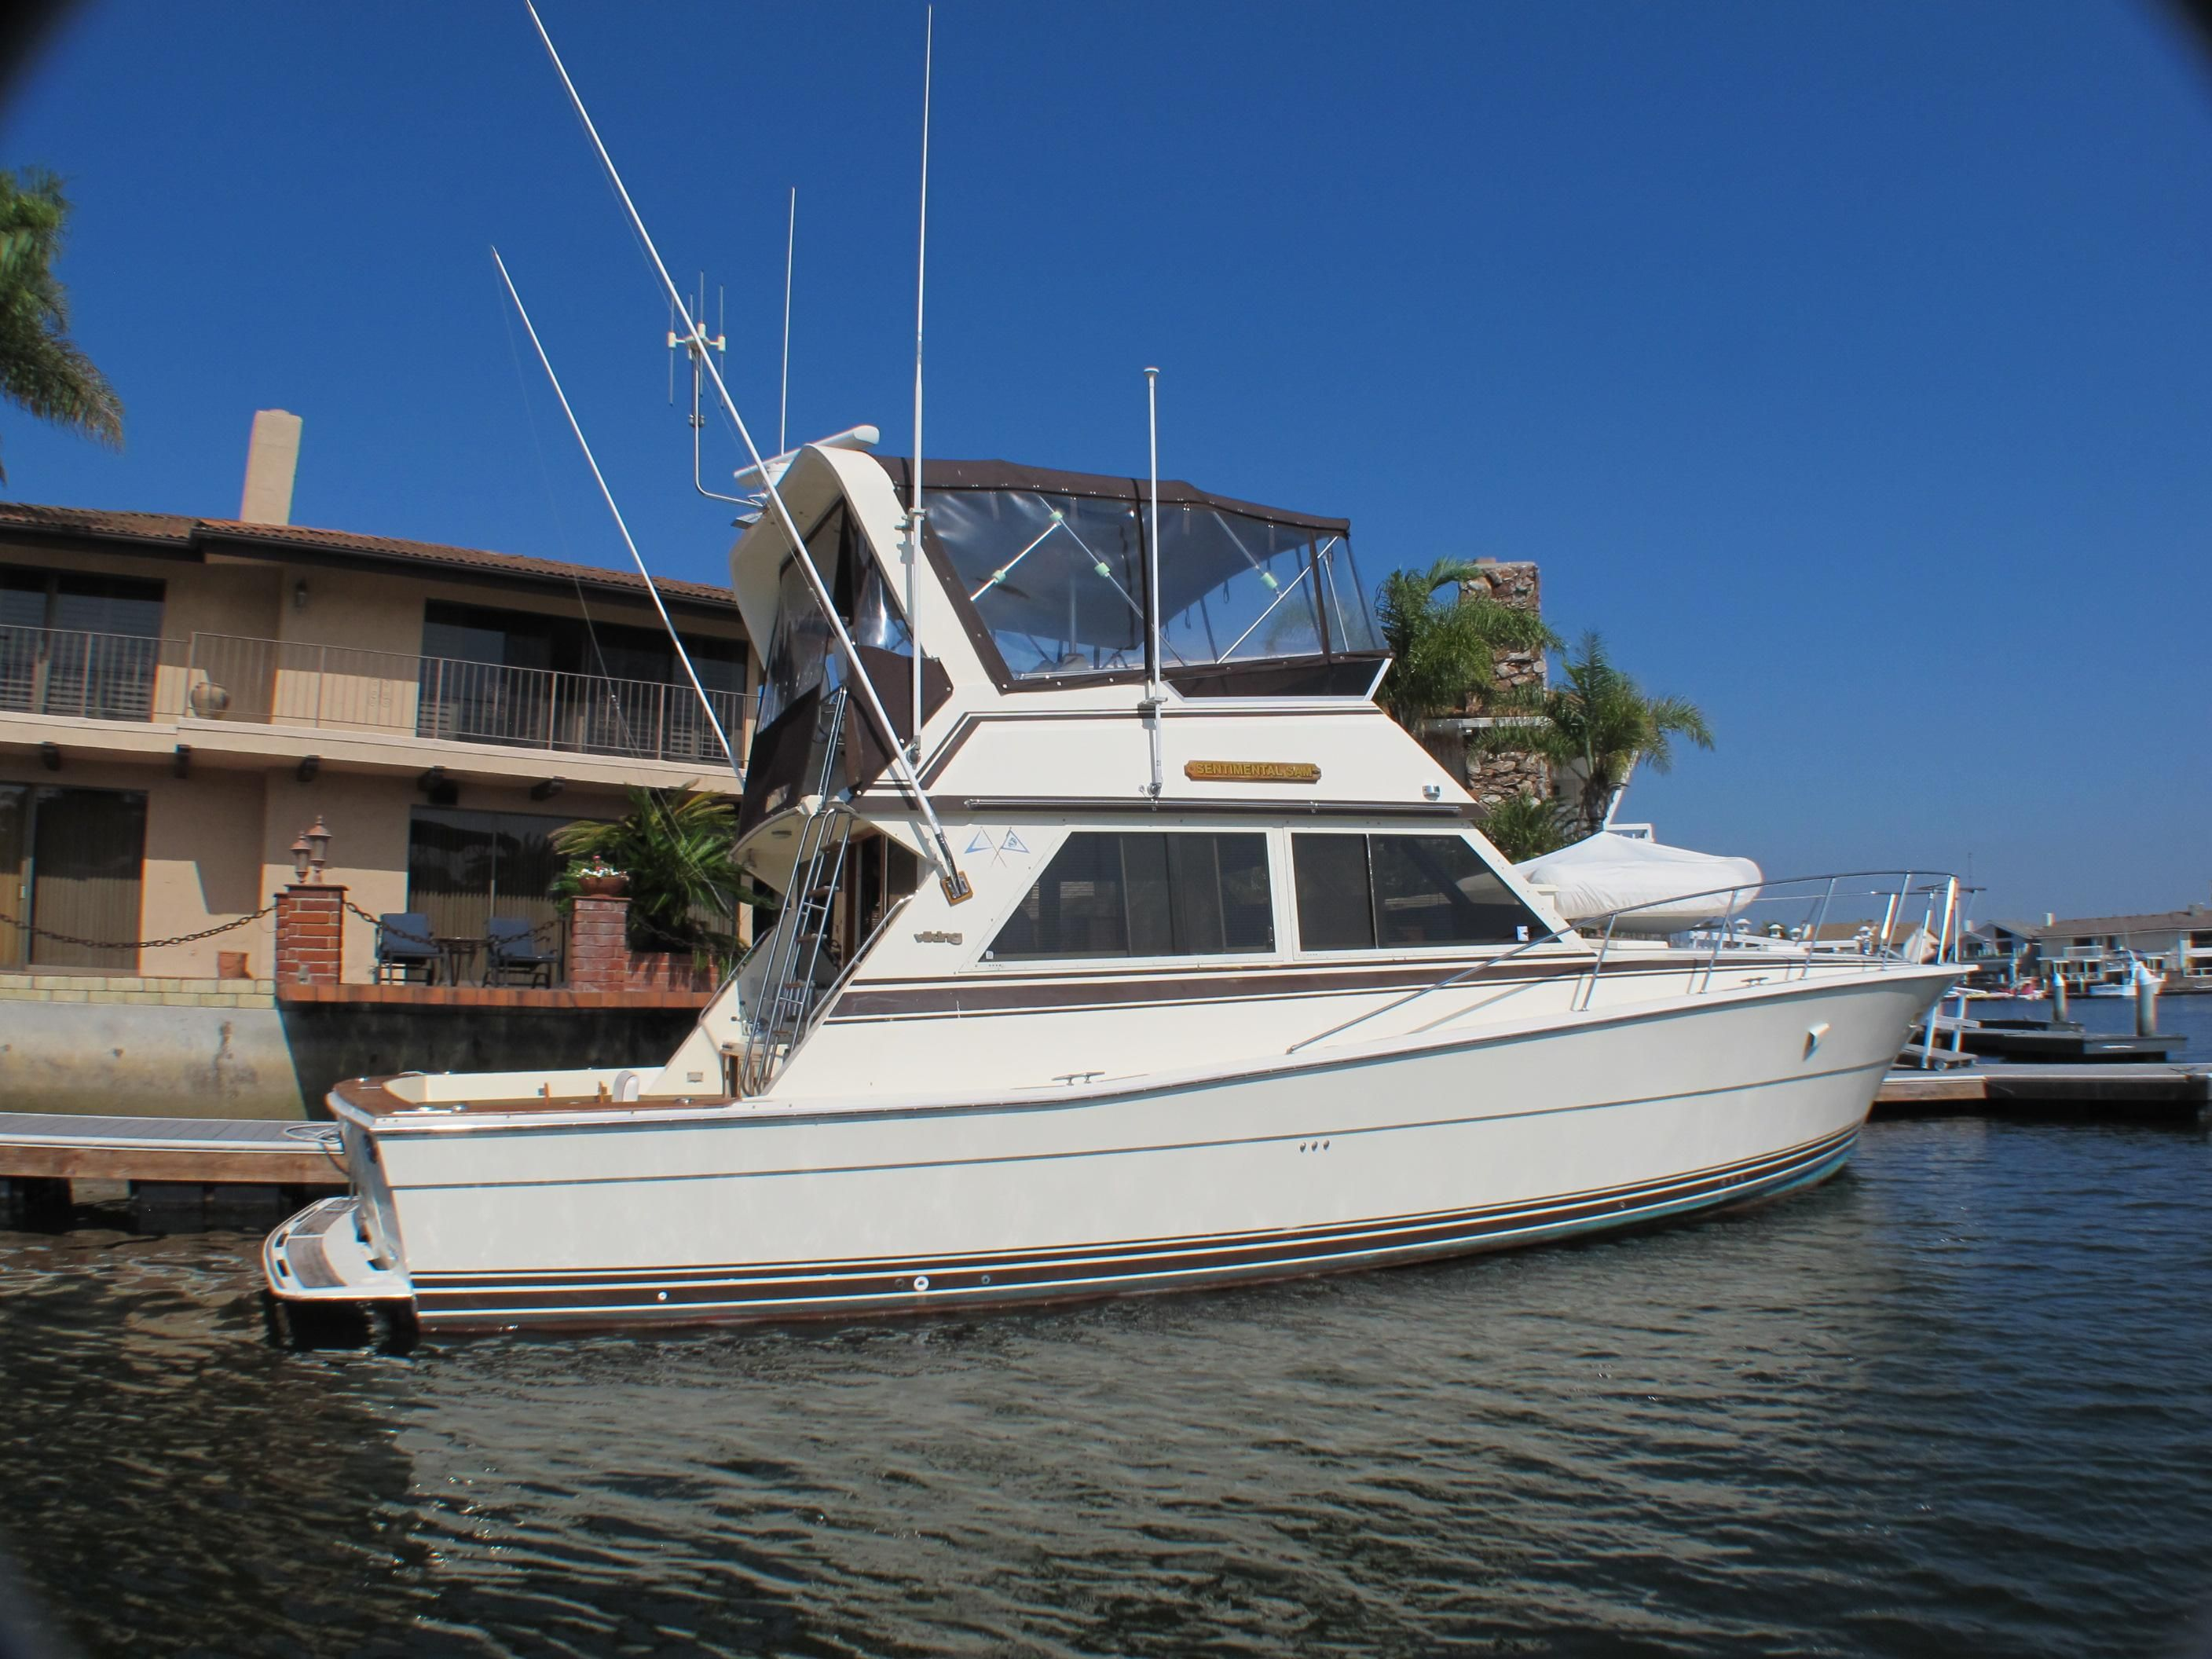 1983 46 Viking Convertible Power Boat For Sale Www Yachtworld Com